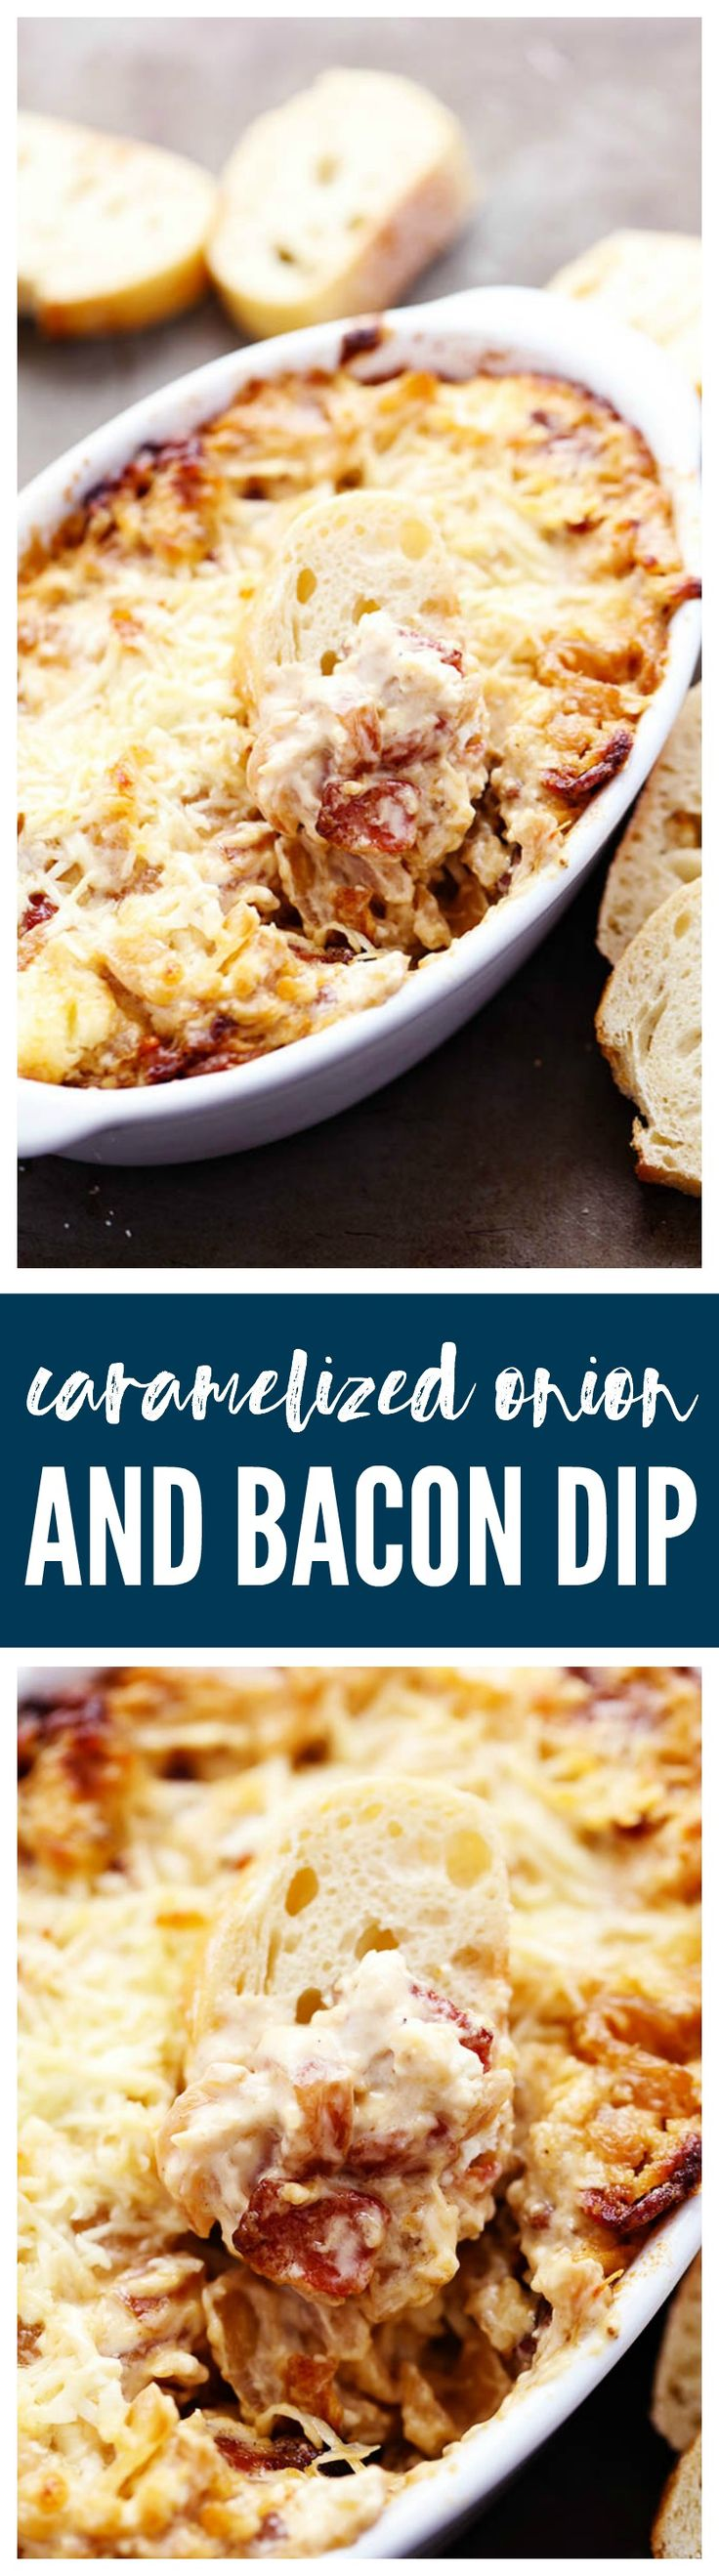 Delicious and sweet caramelized onions inside this incredible creamy and cheesy dip! With the added bacon this dip is sure to be a huge hit at your next party!